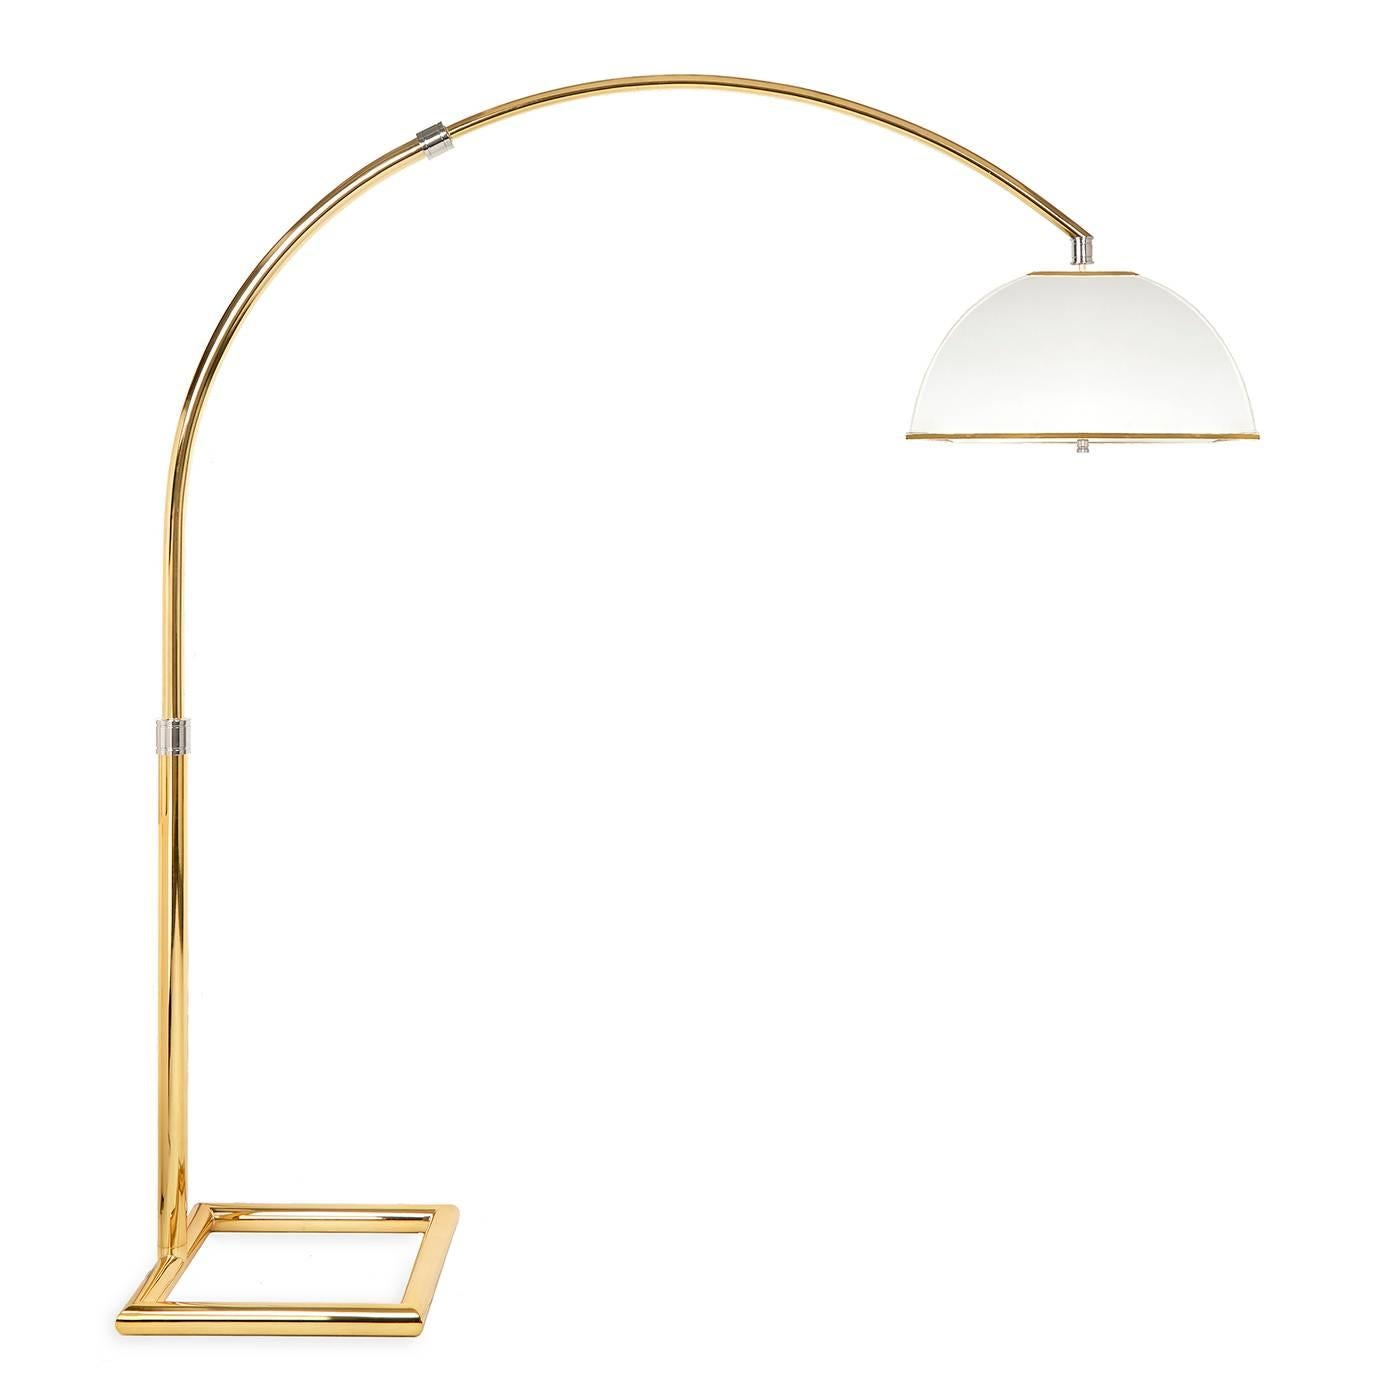 Minimalist And Modernist With Unexpected Detailsu2014our Take On The Arc Lamp